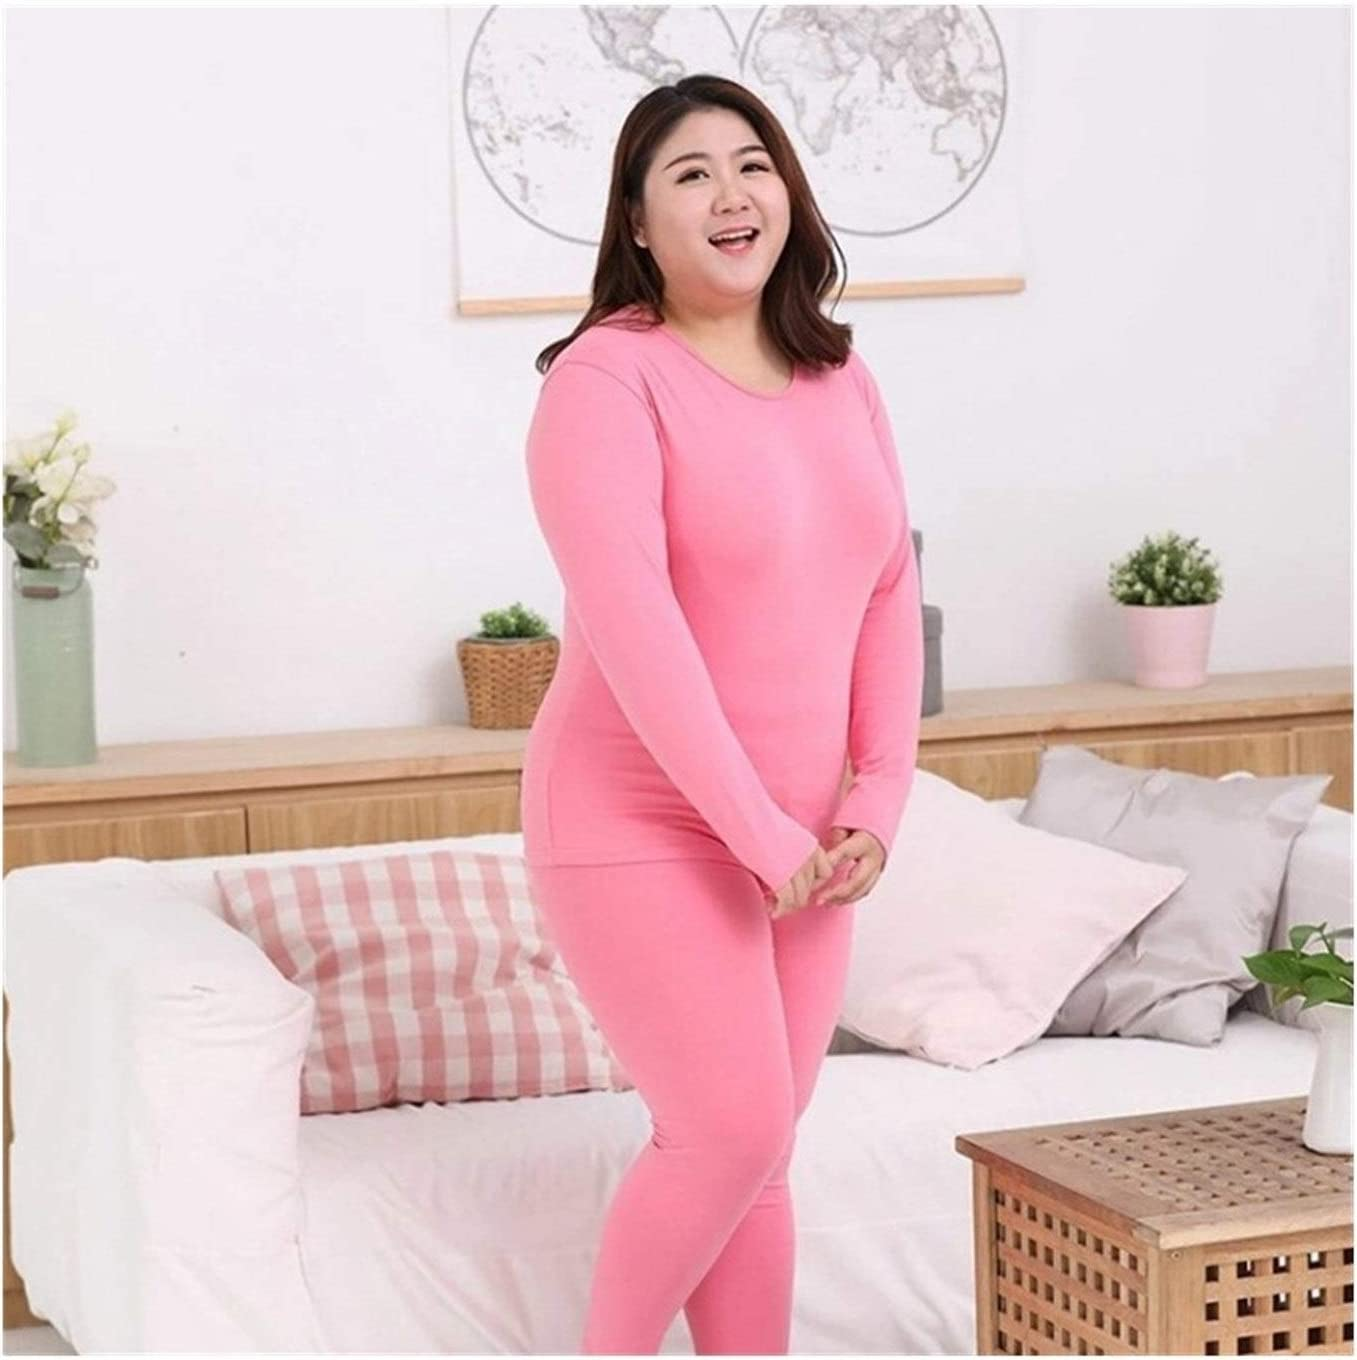 QWERBAM Women Thermal Clothing Thick Warm Underwear Suit Pure Cotton O Neck Seamless Plus Size 6XL Underwear for Winter (Color : Pink, Size : 4XL.)